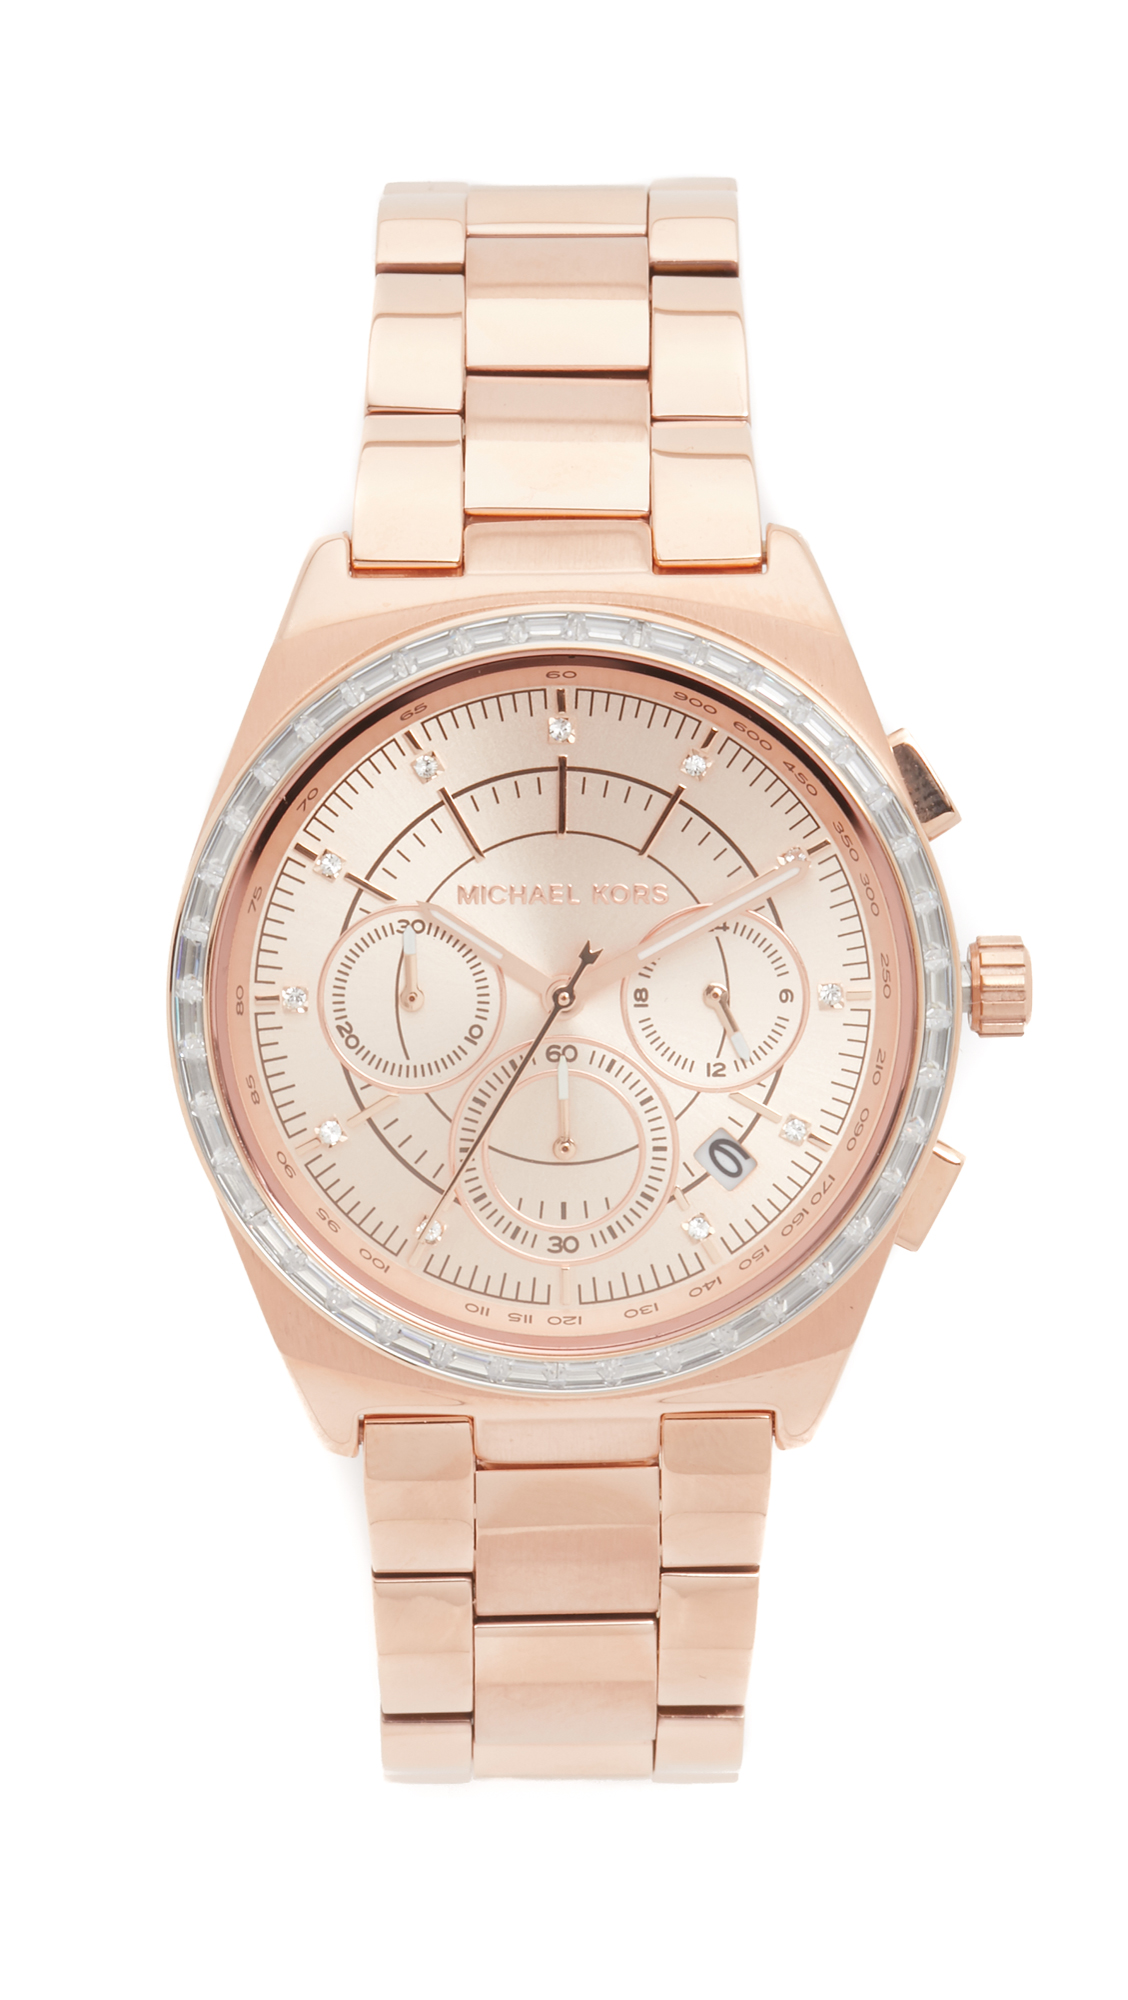 michael kors female michael kors vail watch rose gold